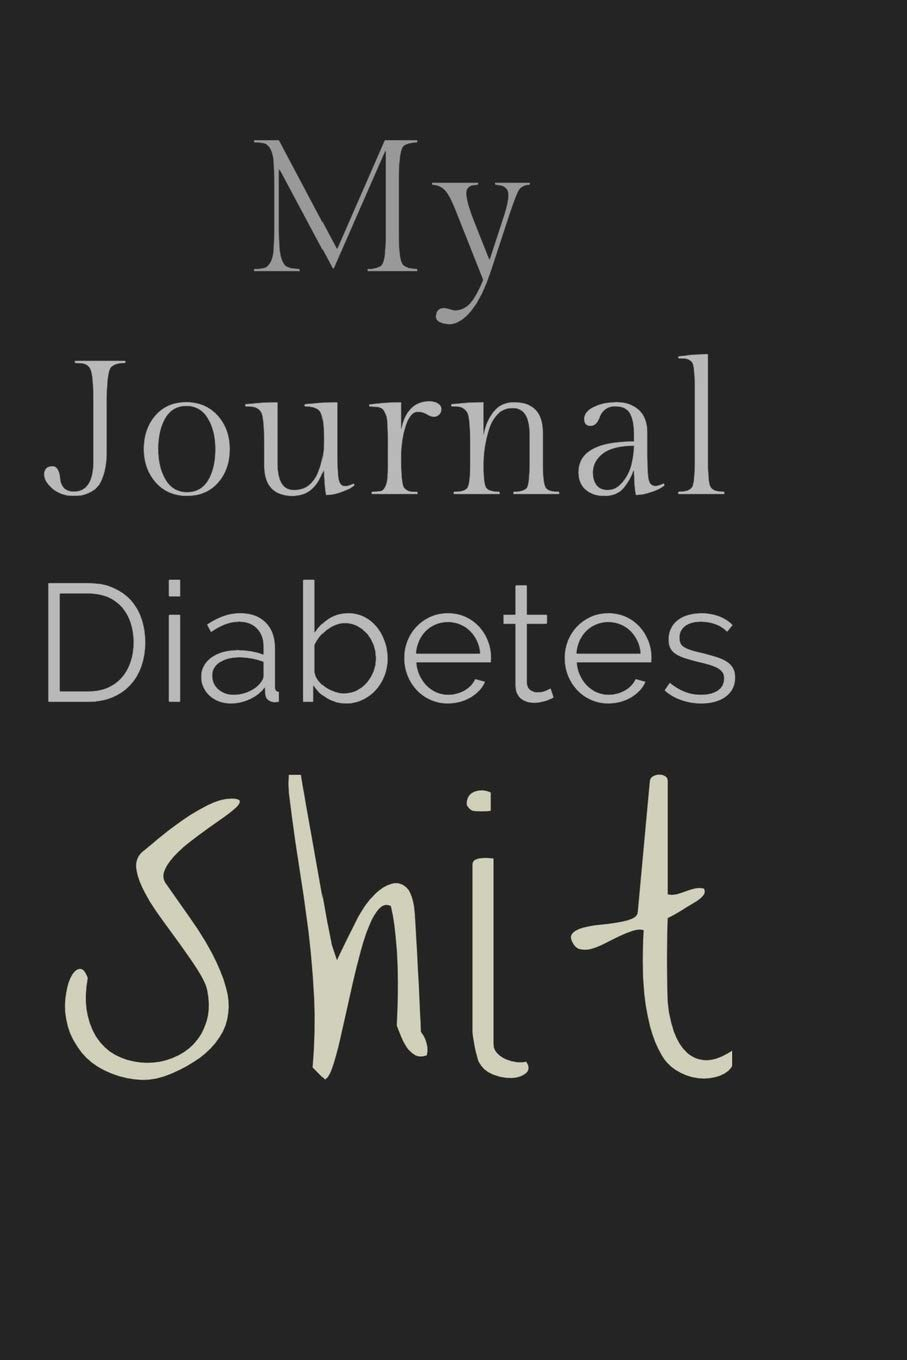 My Journal Diabetes Shit: Monitor Logbook Lined Diabetic Notebook Daily Glucose Prick Diary Food Record Tracker Organizer Ultra Good Gift For Men Kids ... Tracking Paperback Cover 122 Pages Inch Sized